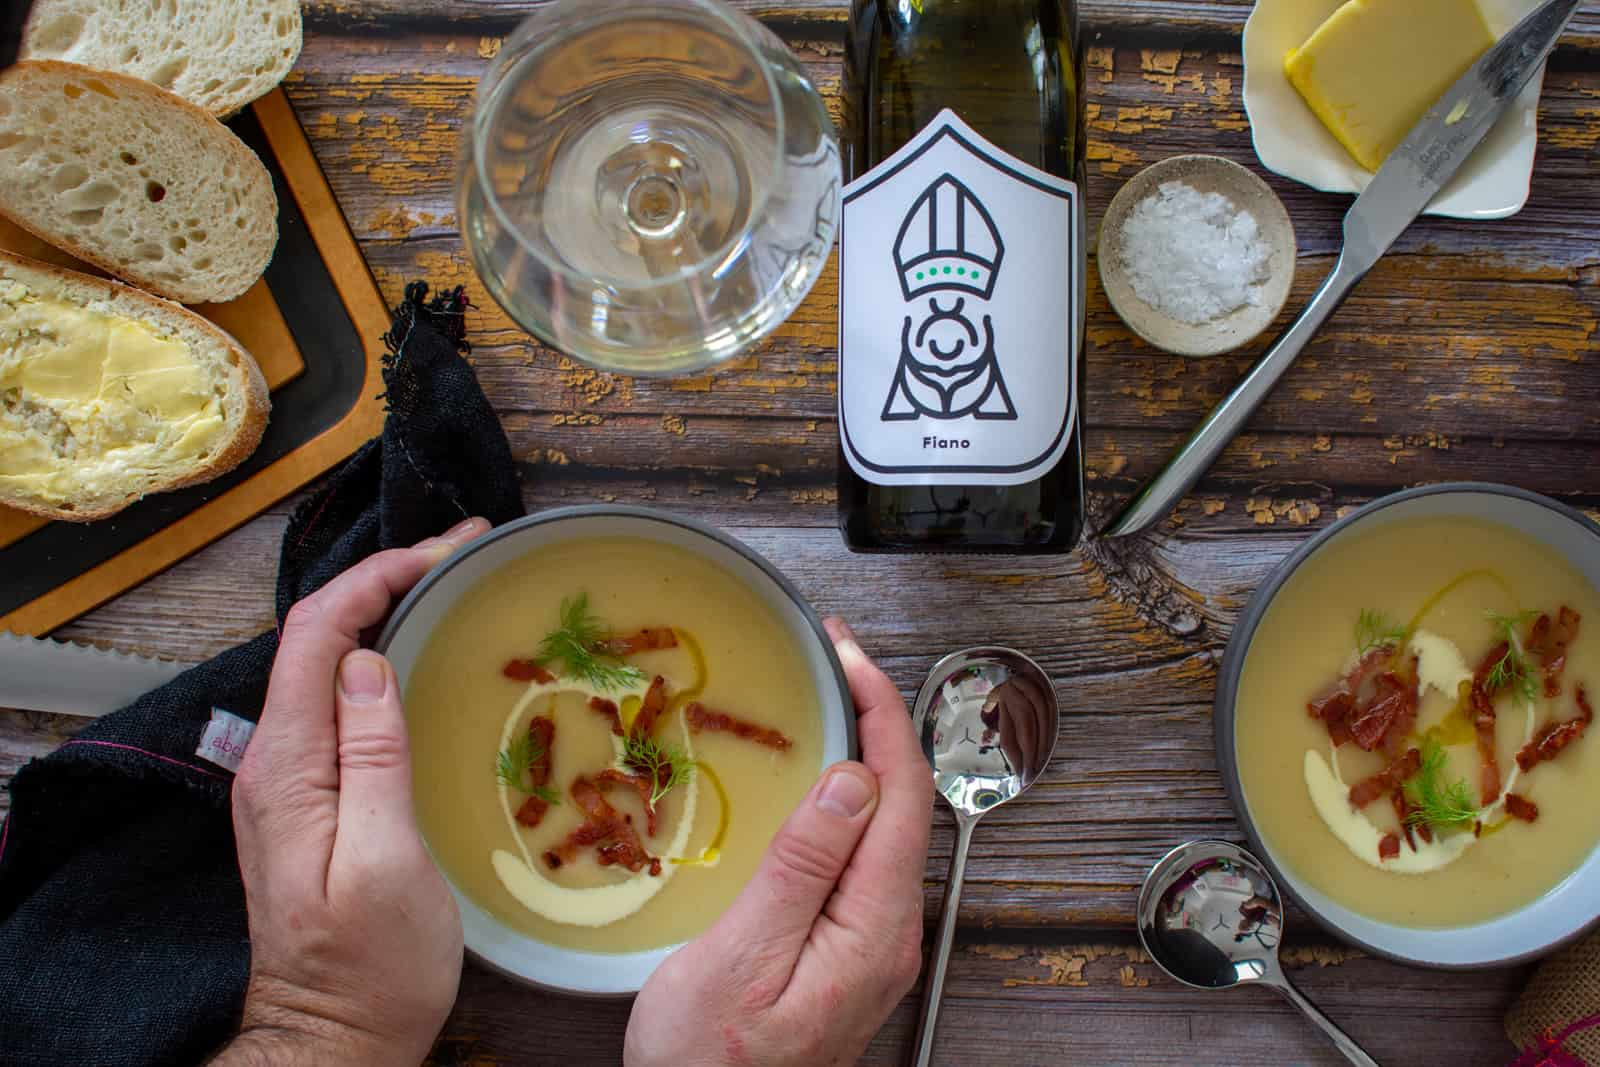 Two bowls of parsnip soup on a table with someone holding one of the bowls, bread, white wine, butter and salt also on the table